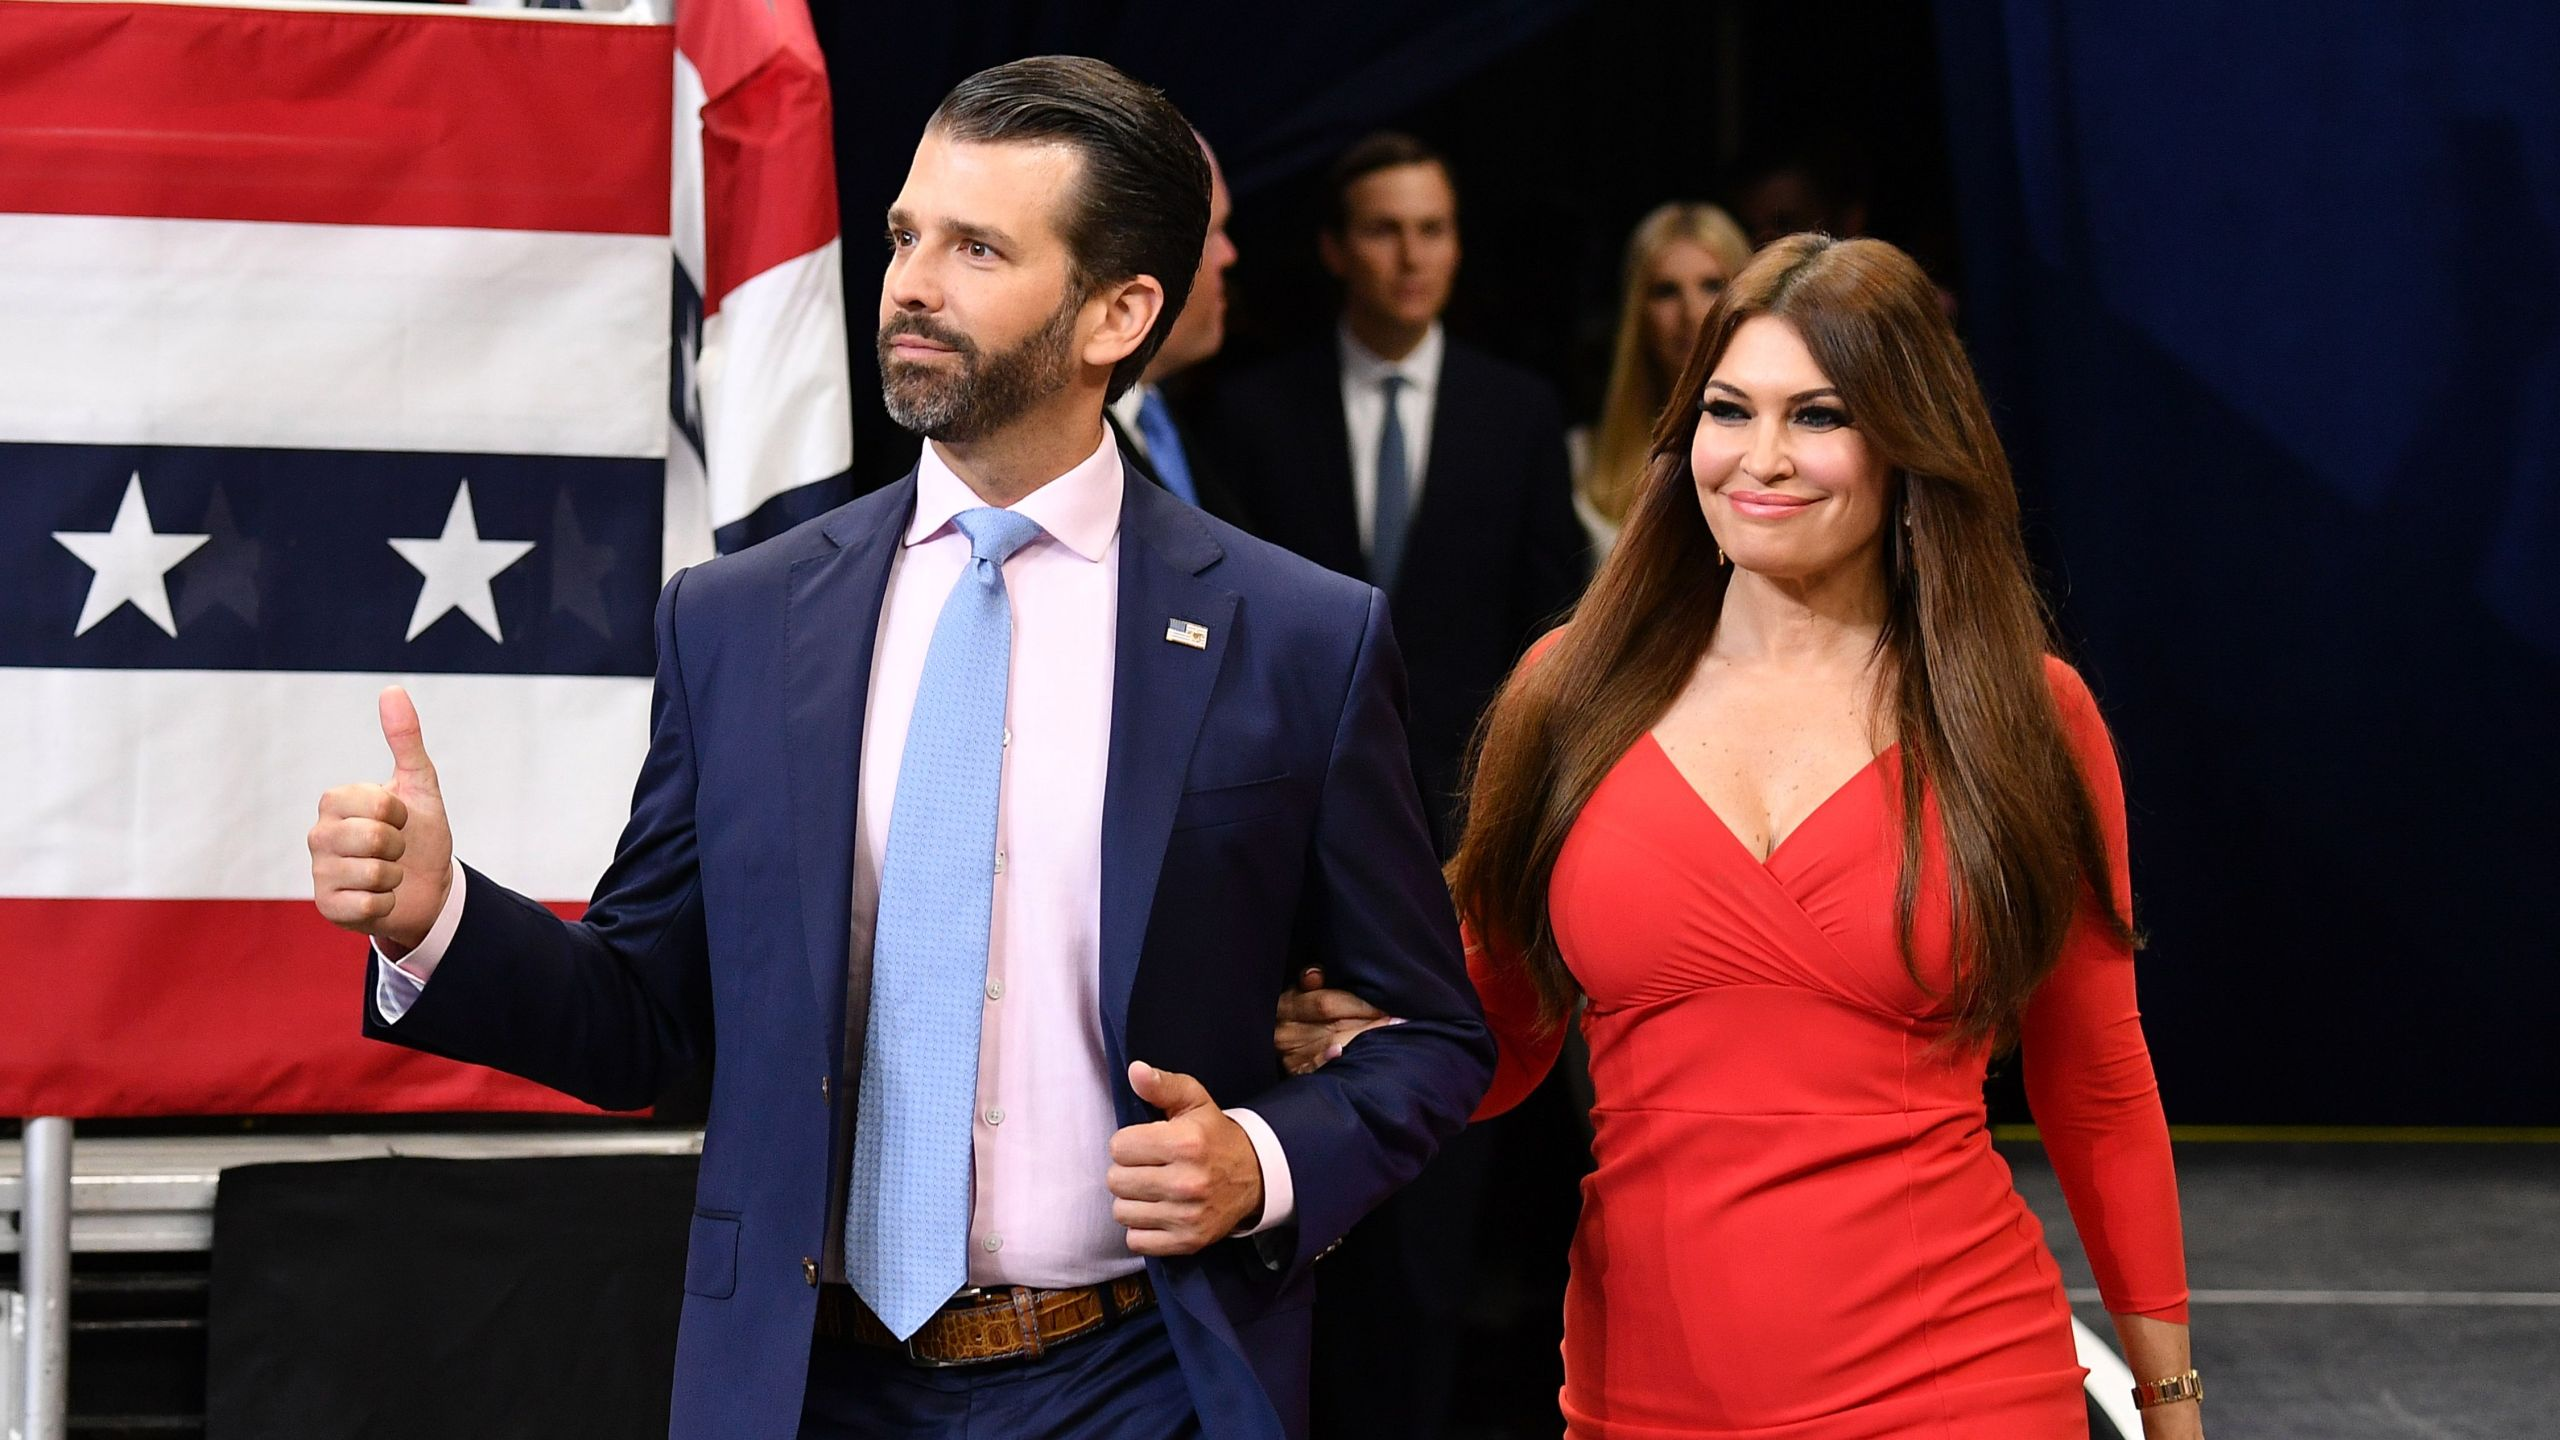 Kimberly Guilfoyle with Donald Trump Jr. She has tested positive for coronavirus.